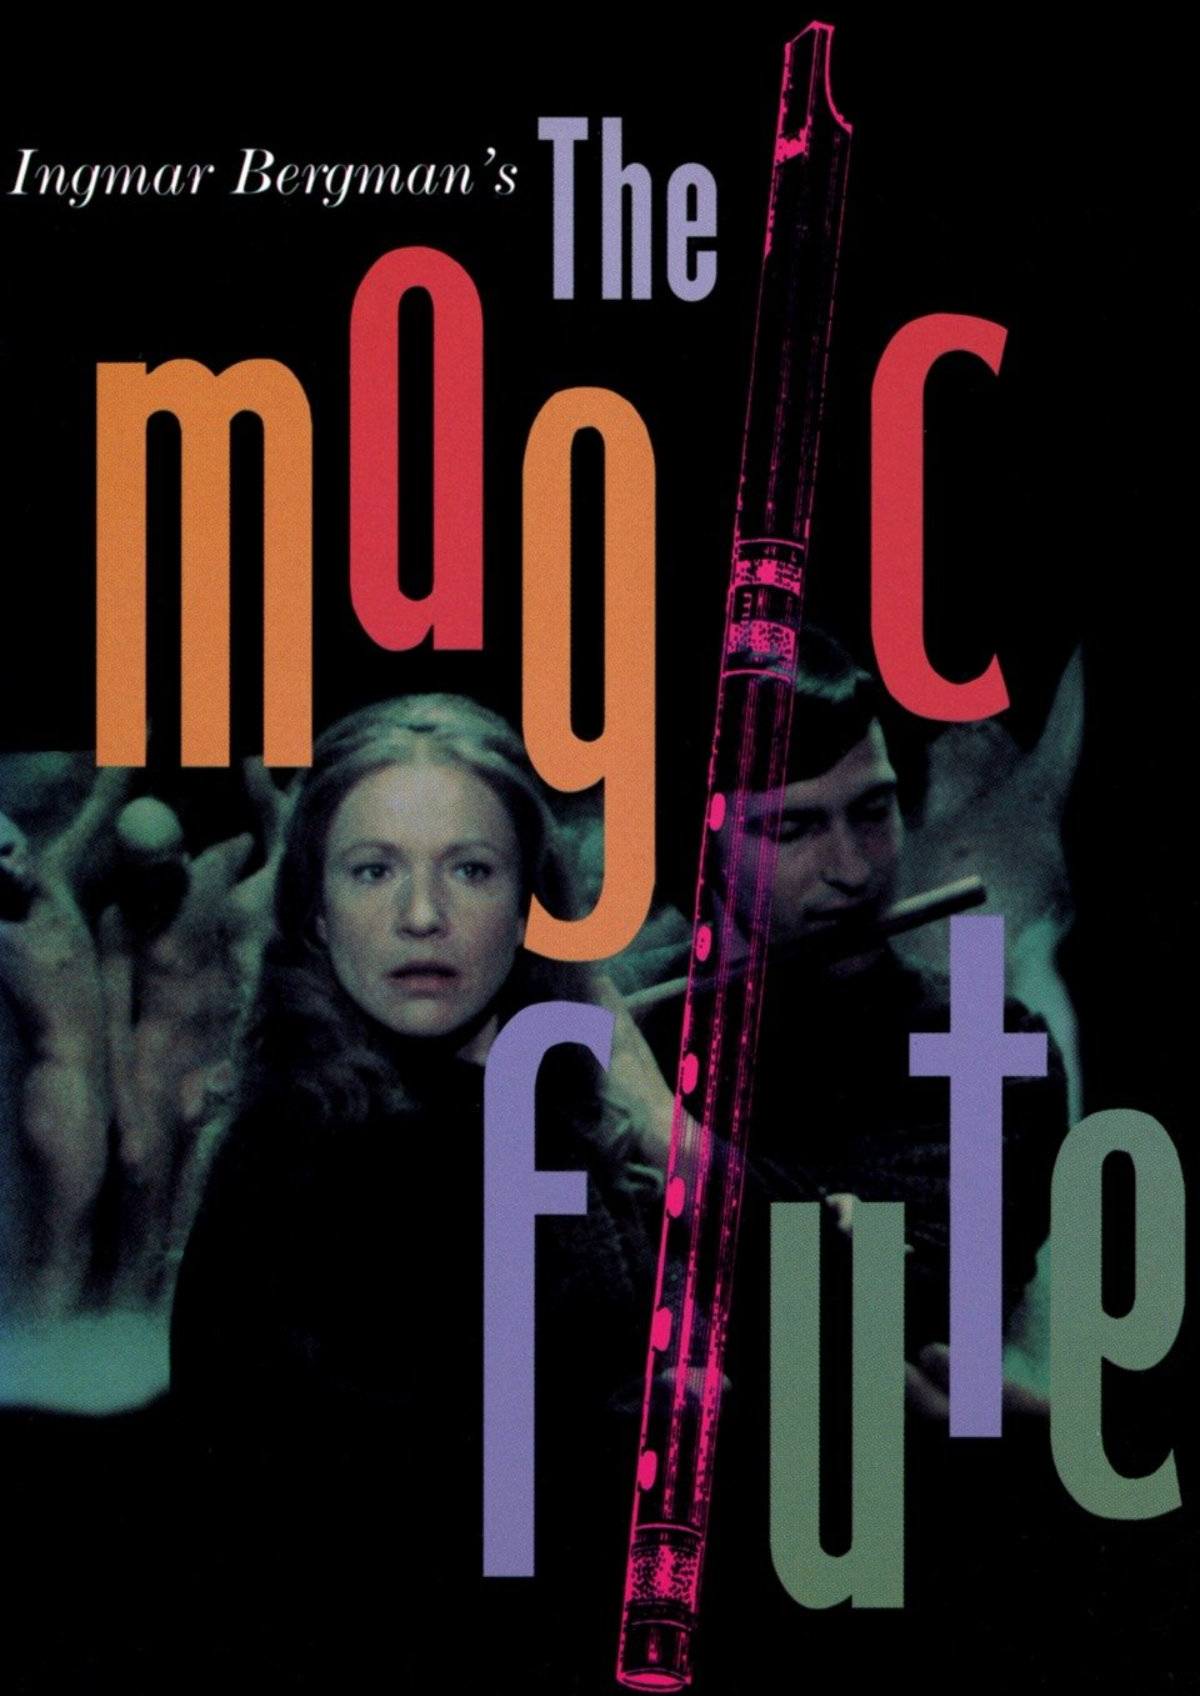 'The Magic Flute (Trollflojten)' movie poster